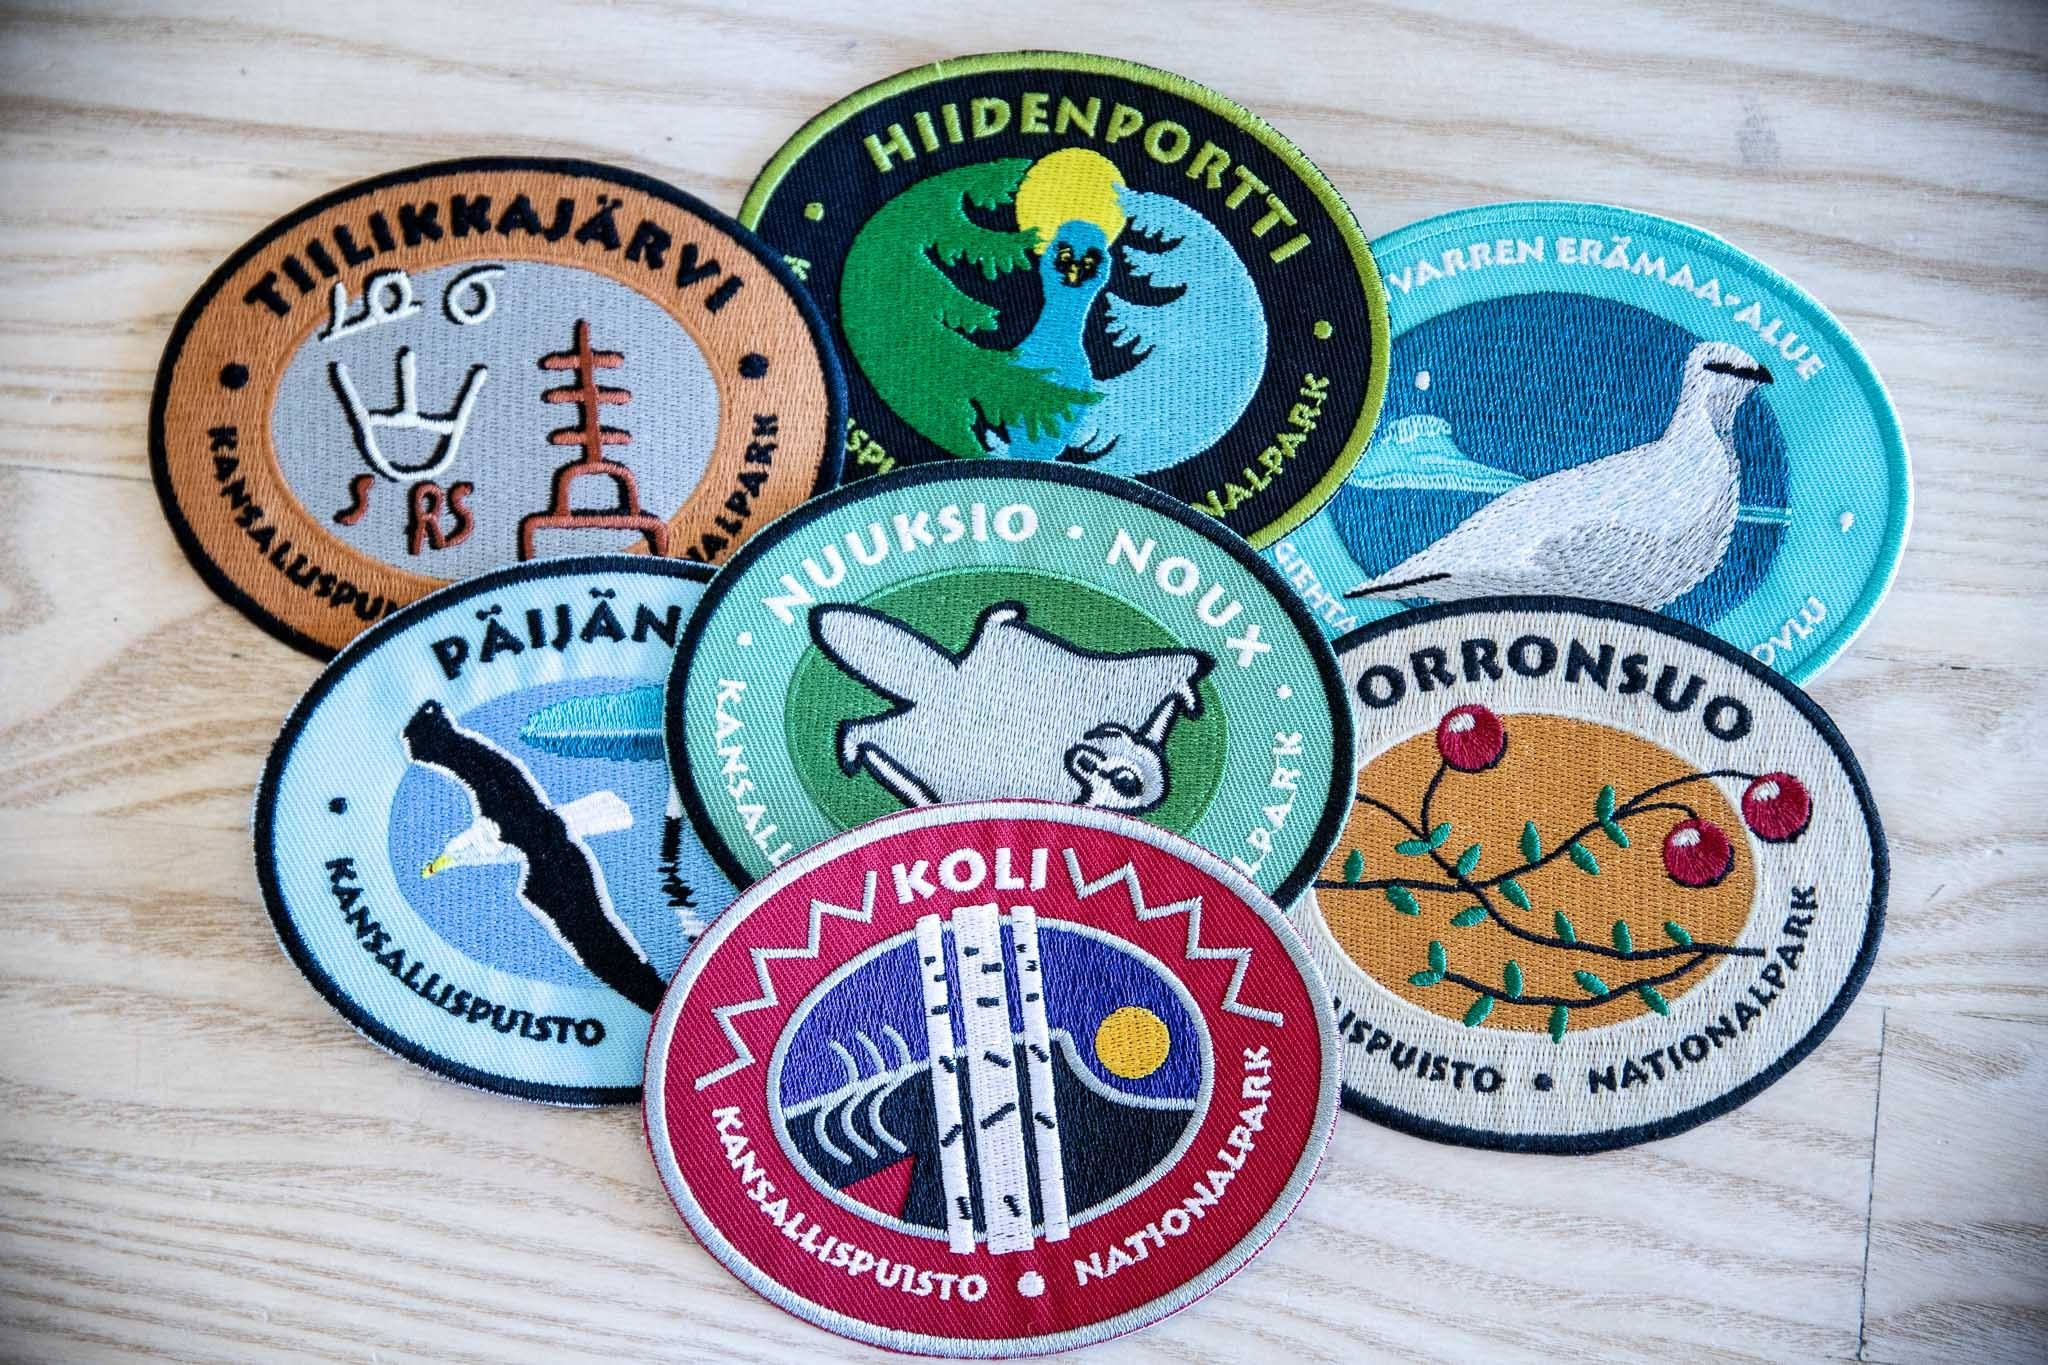 National park badges